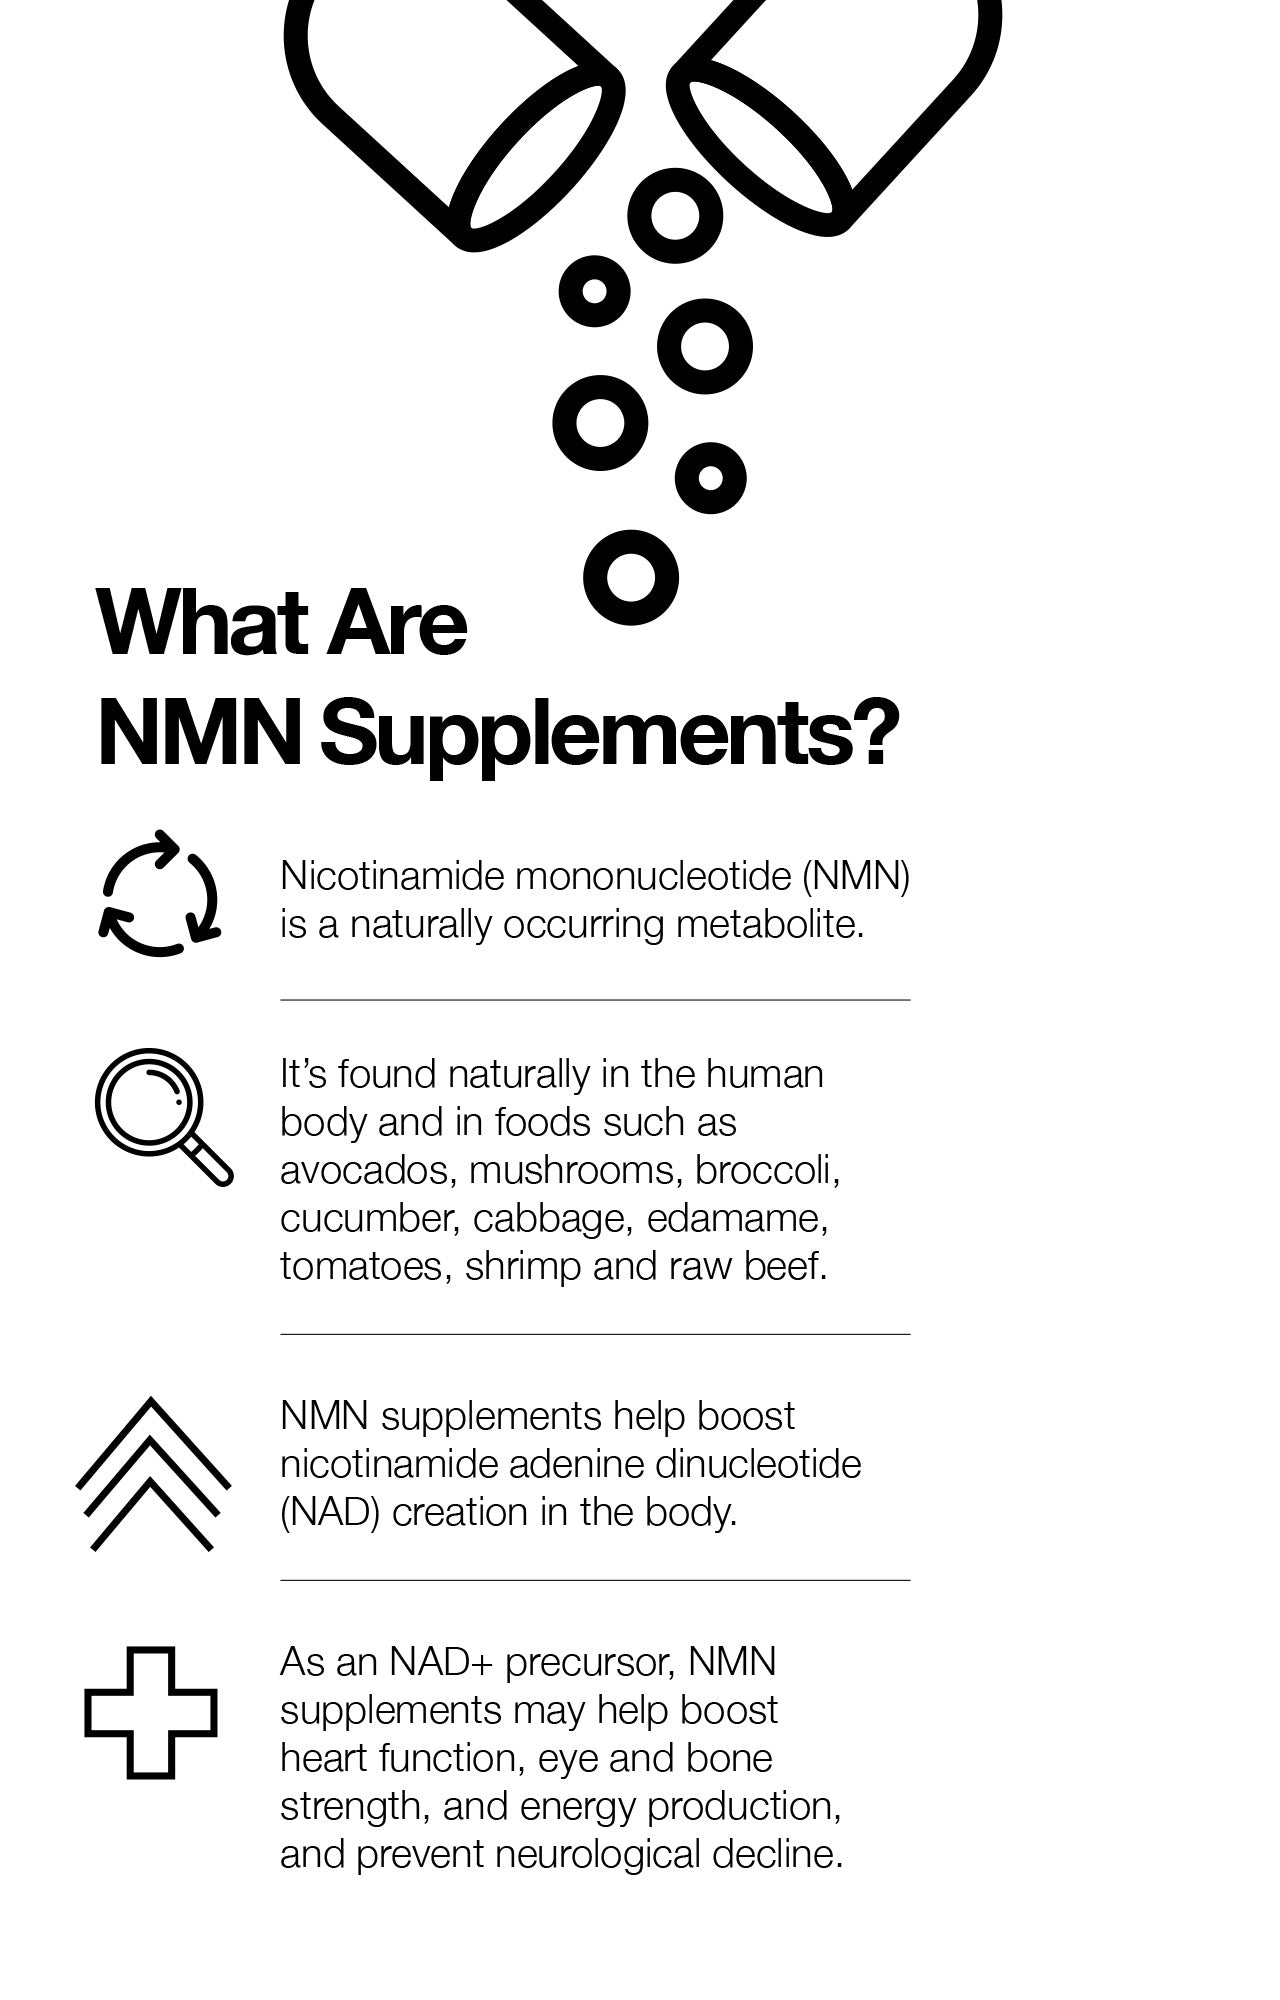 What Are NMN Supplements?